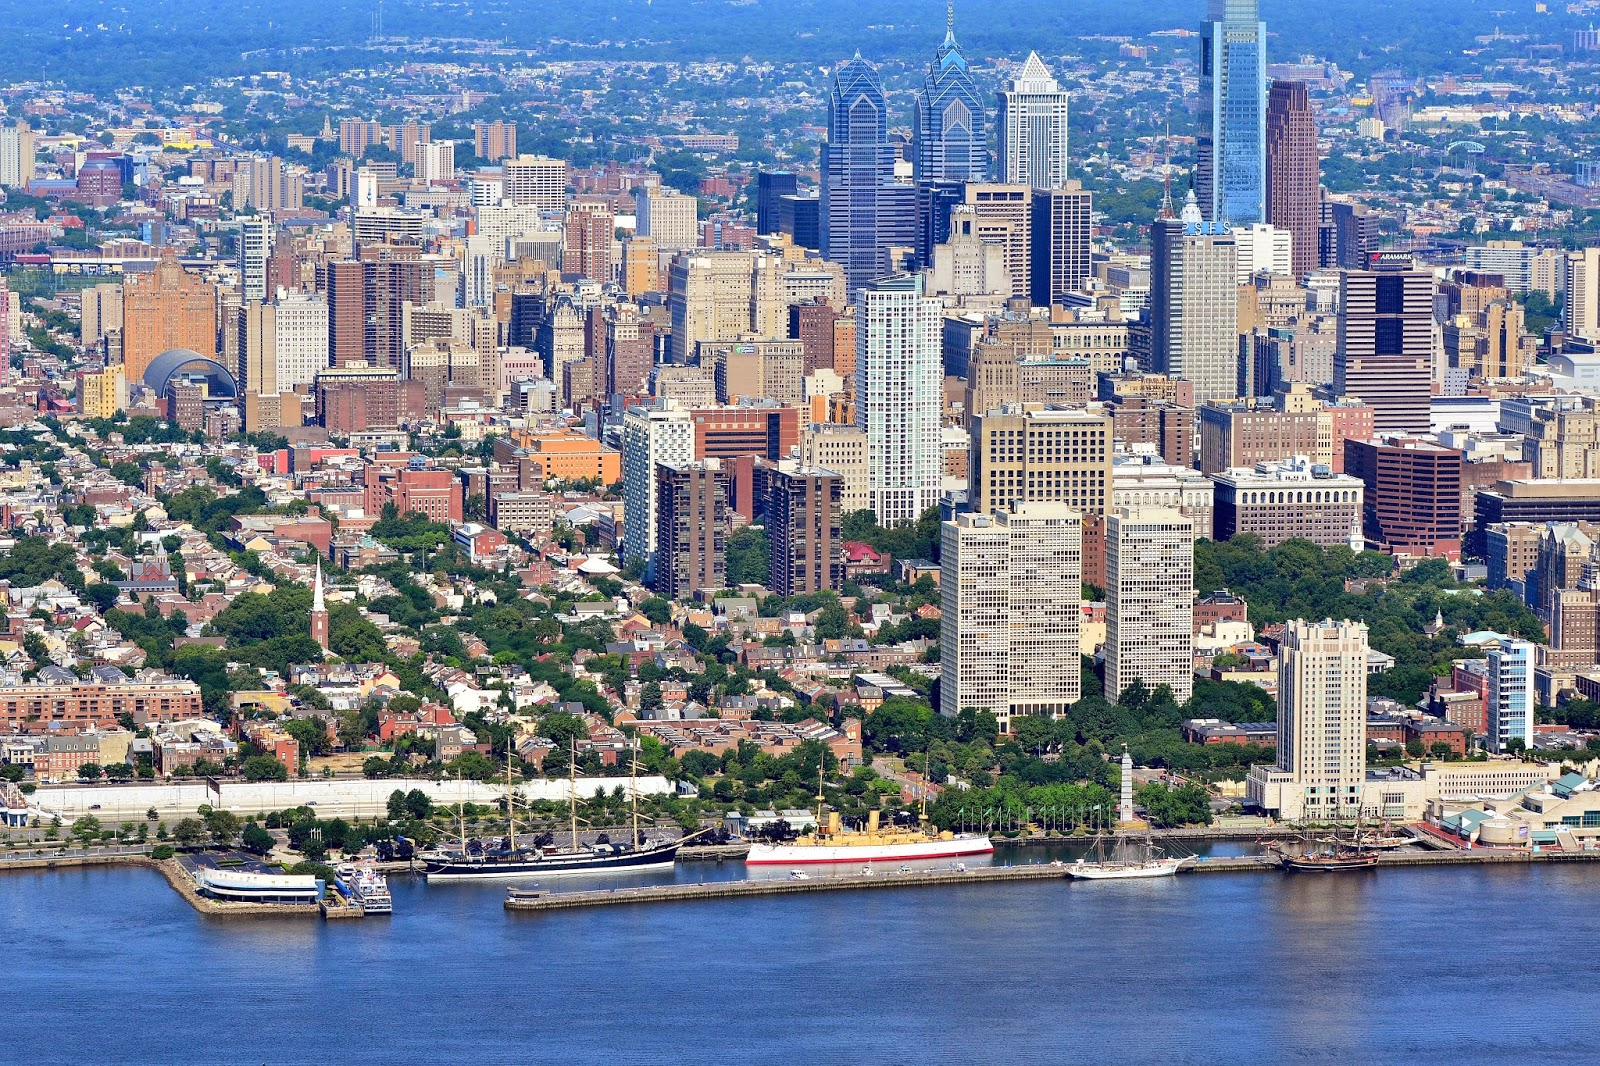 aslay may cosh: 5 Biggest Cities in the USA